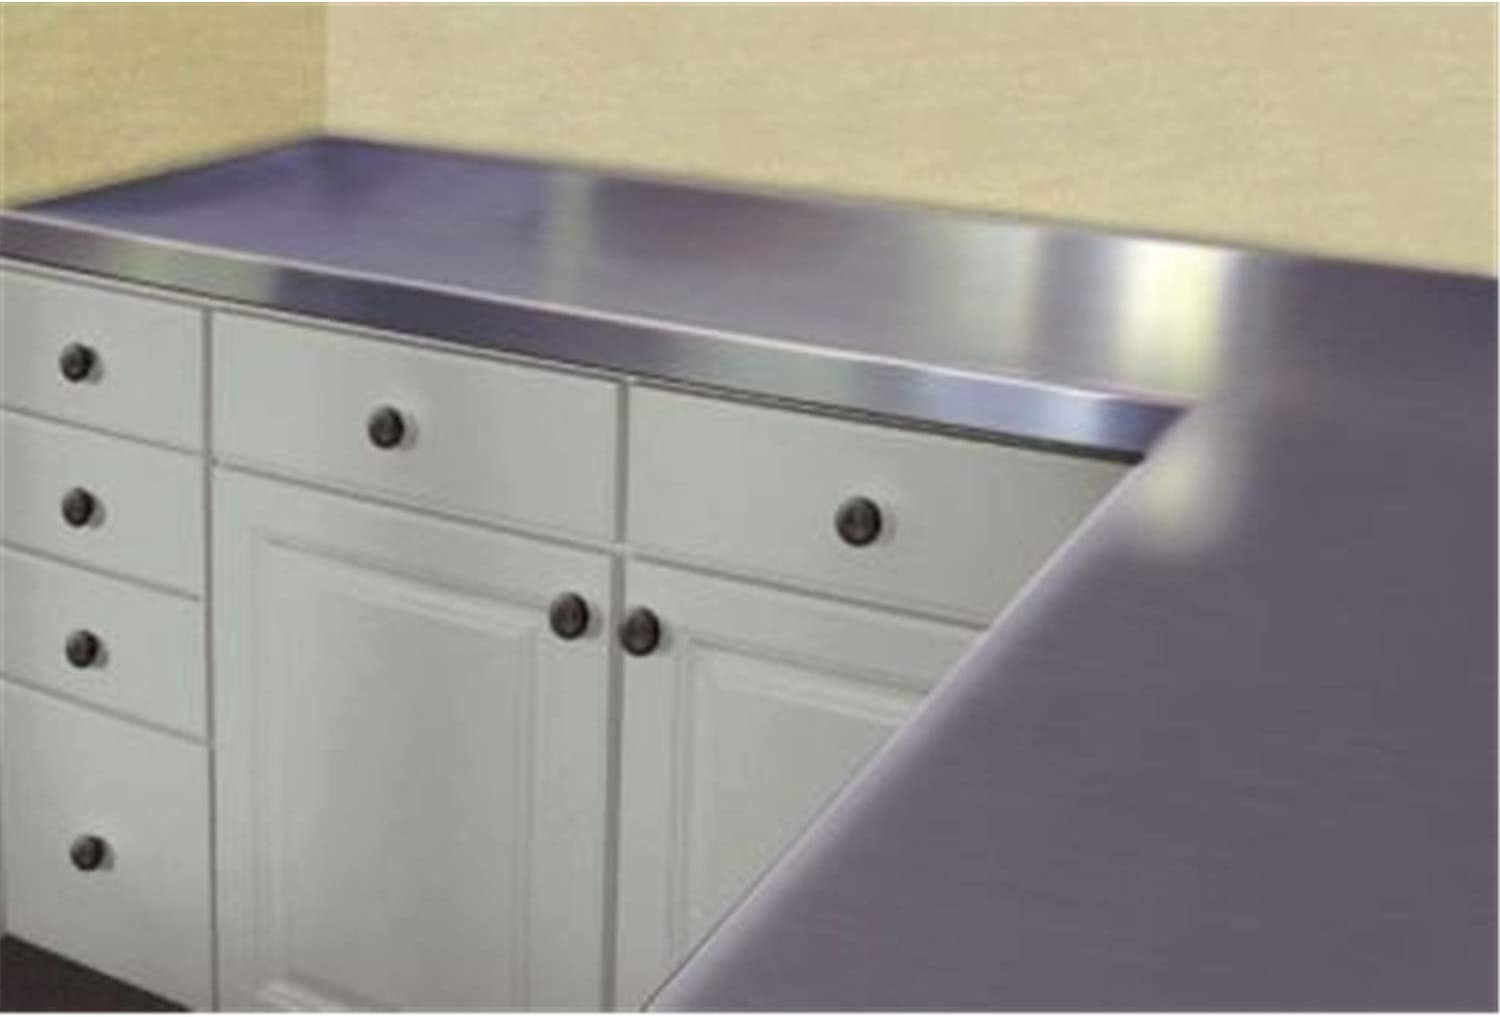 Stainless Steel Counter Top Max 66% OFF Over item handling